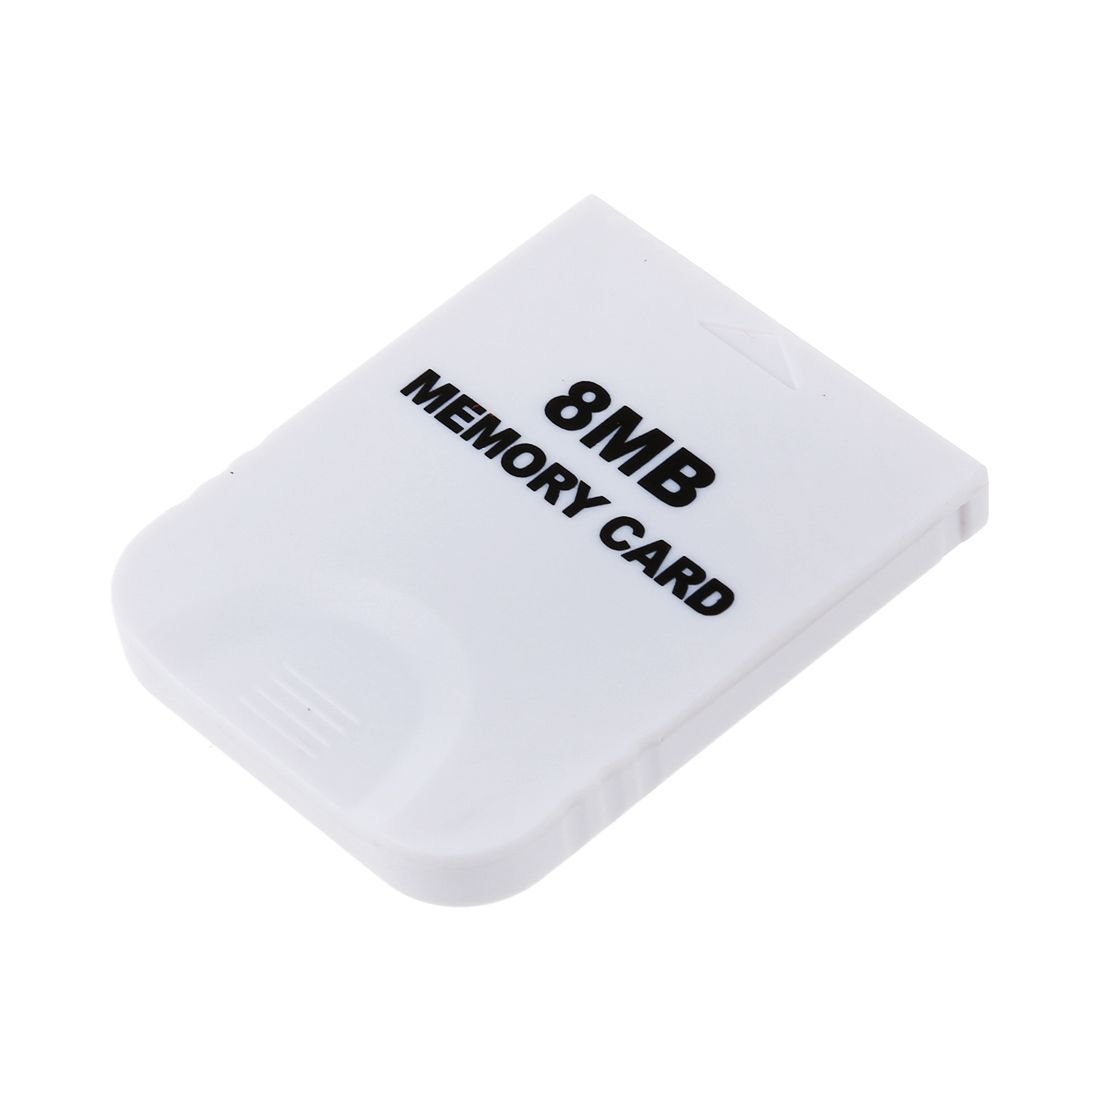 SODIAL(R) 8 MB Memory Card for Wii GC Gamecube